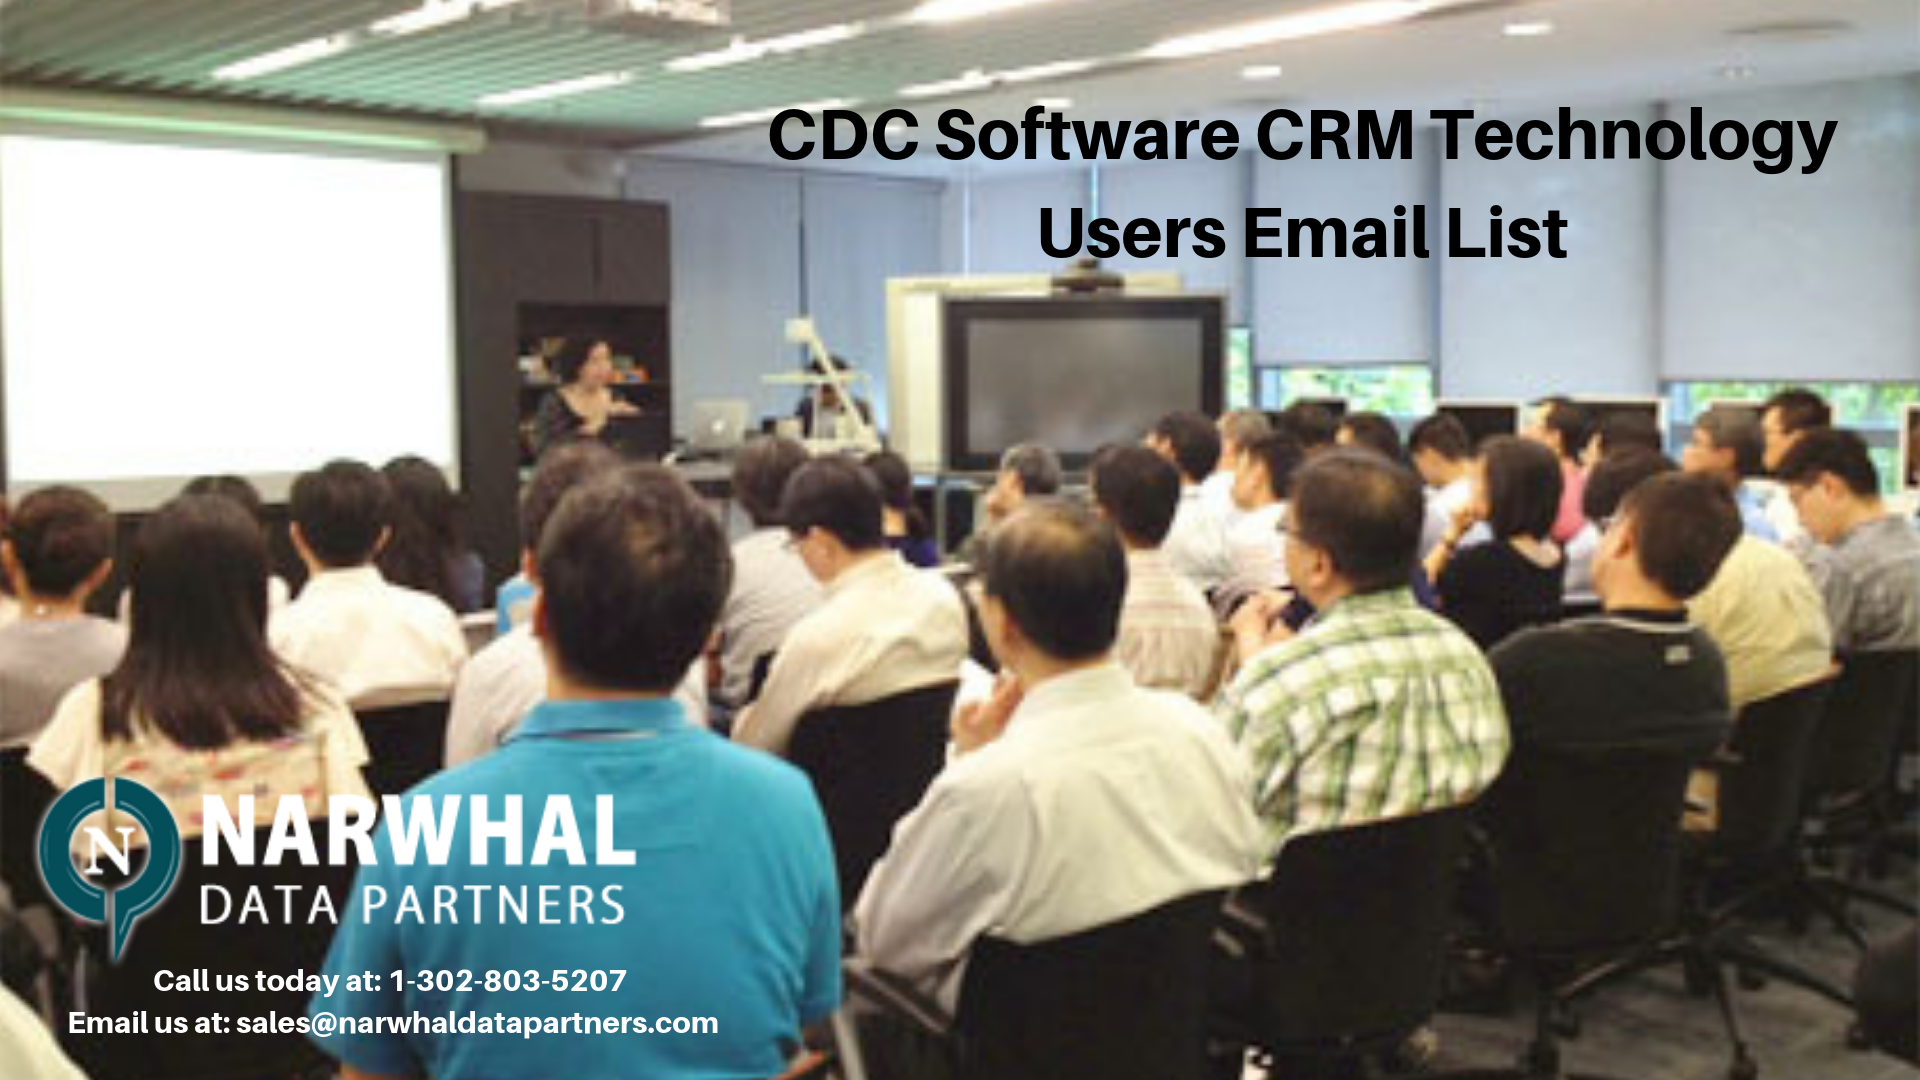 http://narwhaldatapartners.com/cdc-software-crm-technology-users-email-list.html